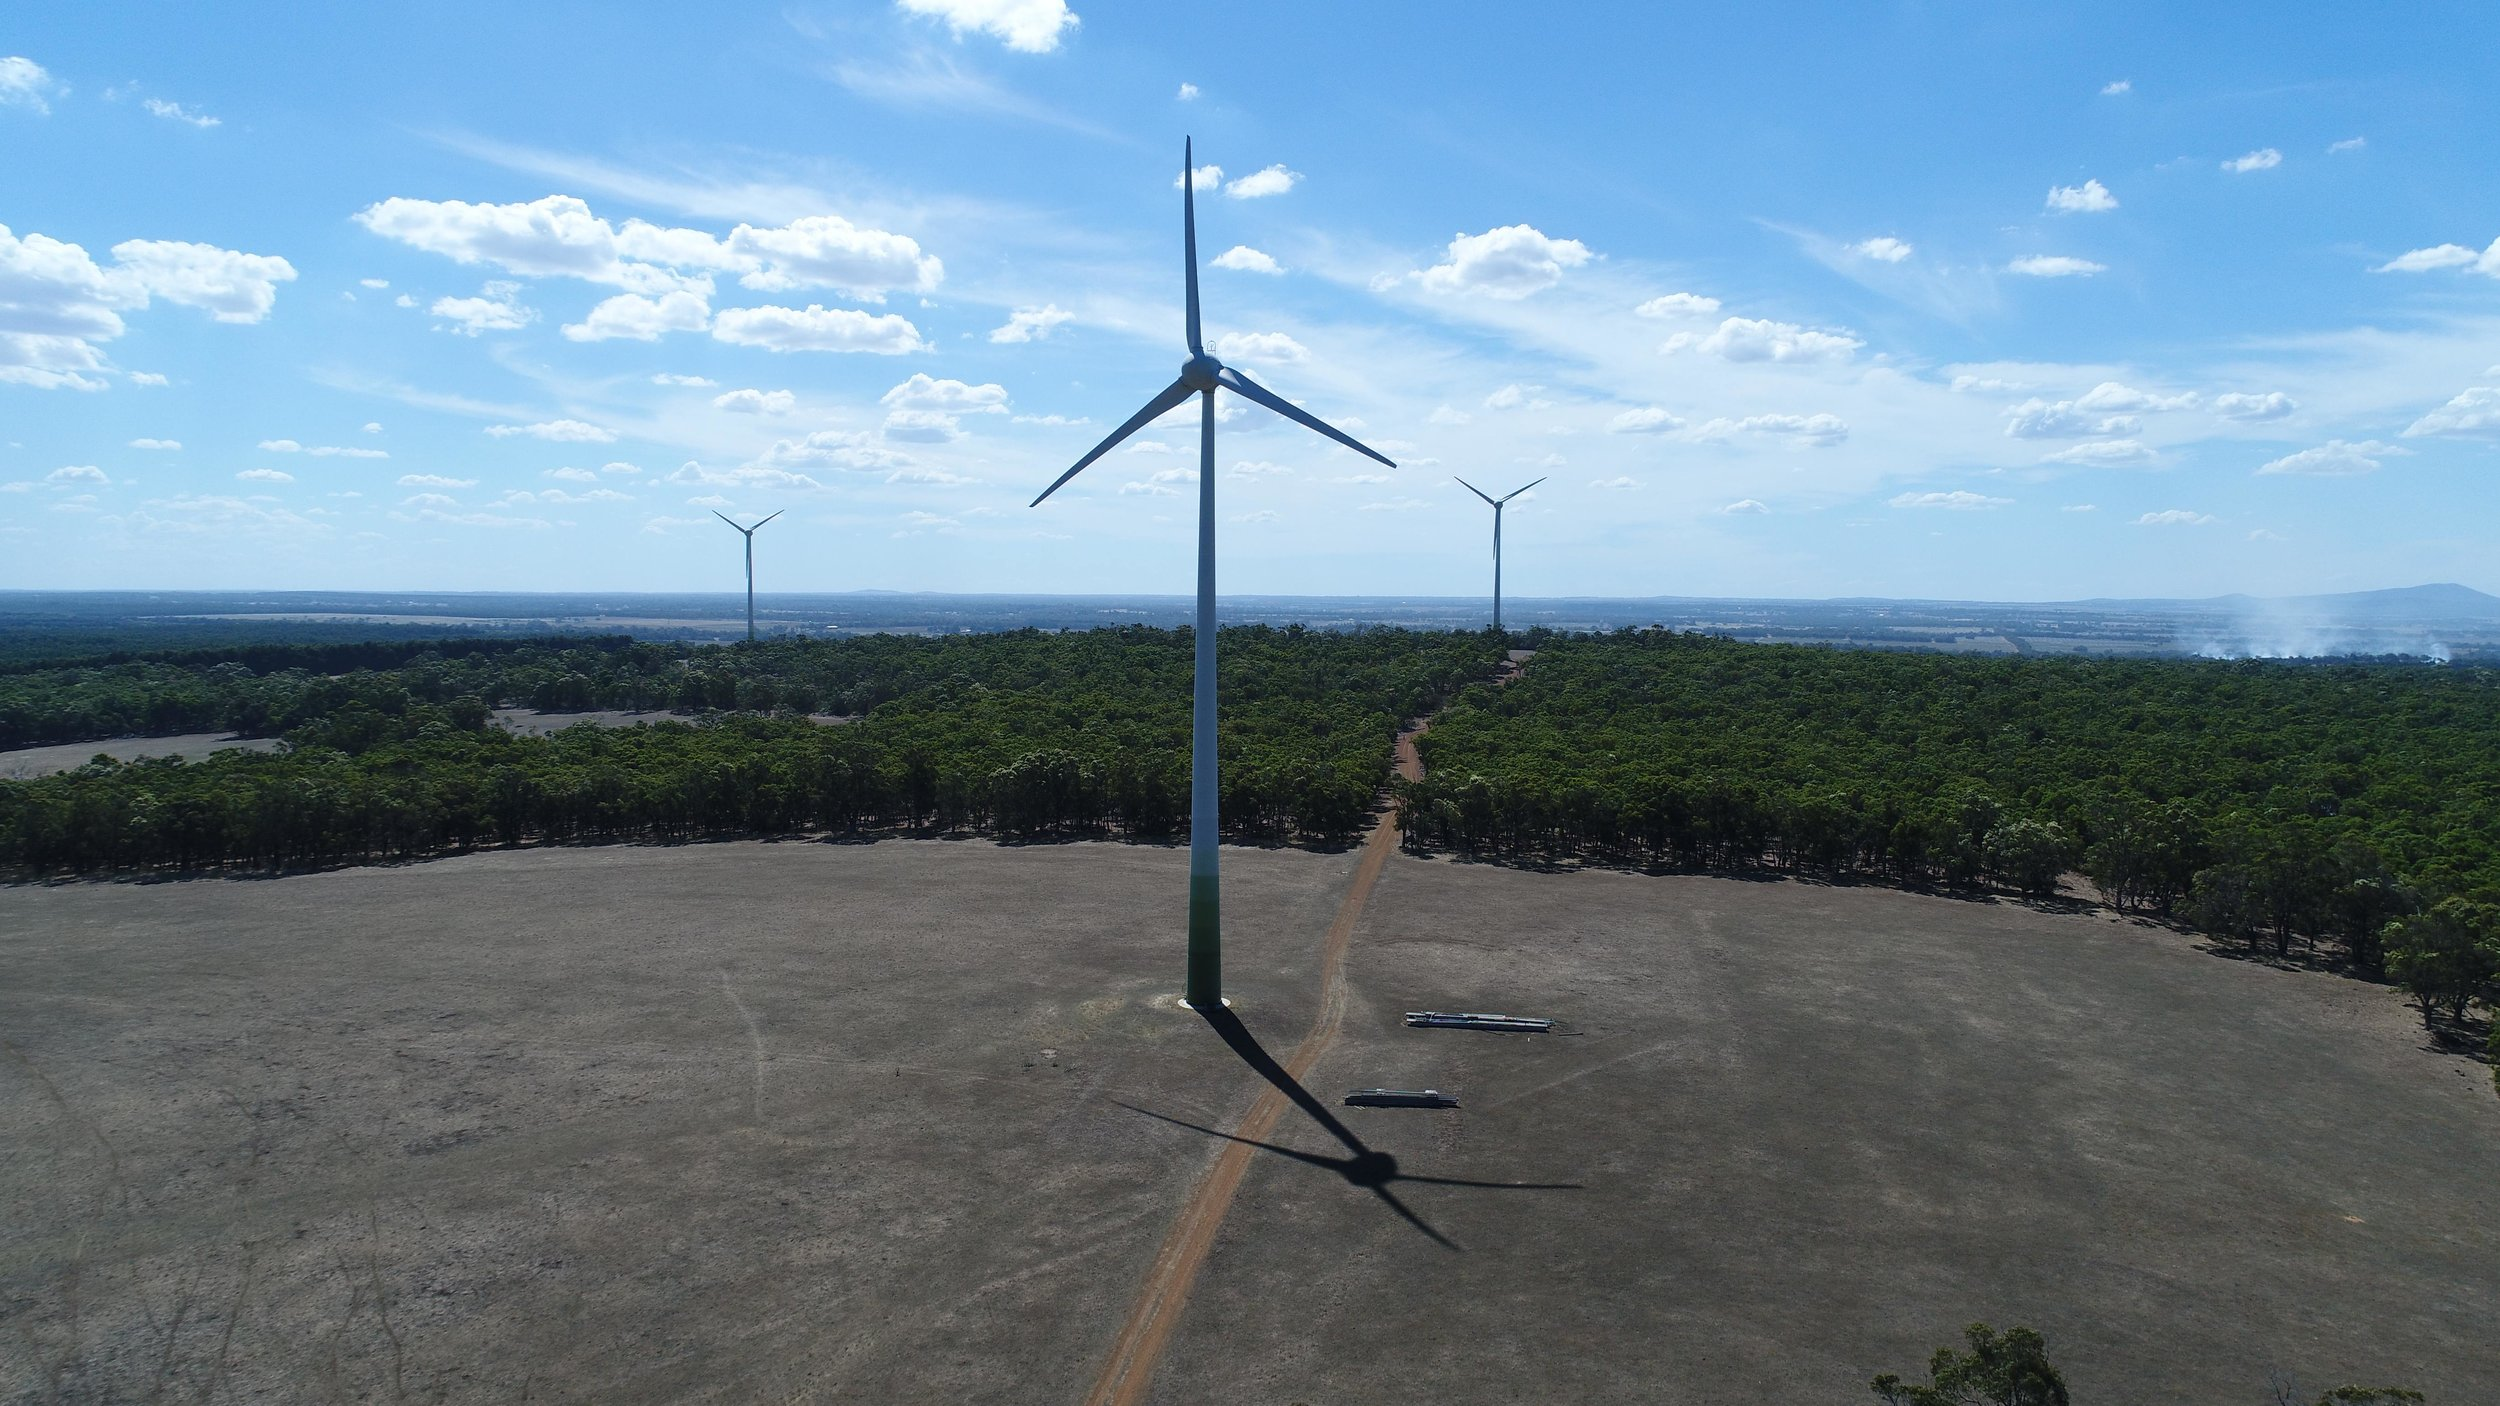 Last week at the Energy and Mines Summit, Perth company Advanced Energy Resources (AER) announced it signed a long-term power purchase agreement with GMA Garnet to build a 3 megawatt wind and solar farm with battery storage near Kalbarri, Western Australia.